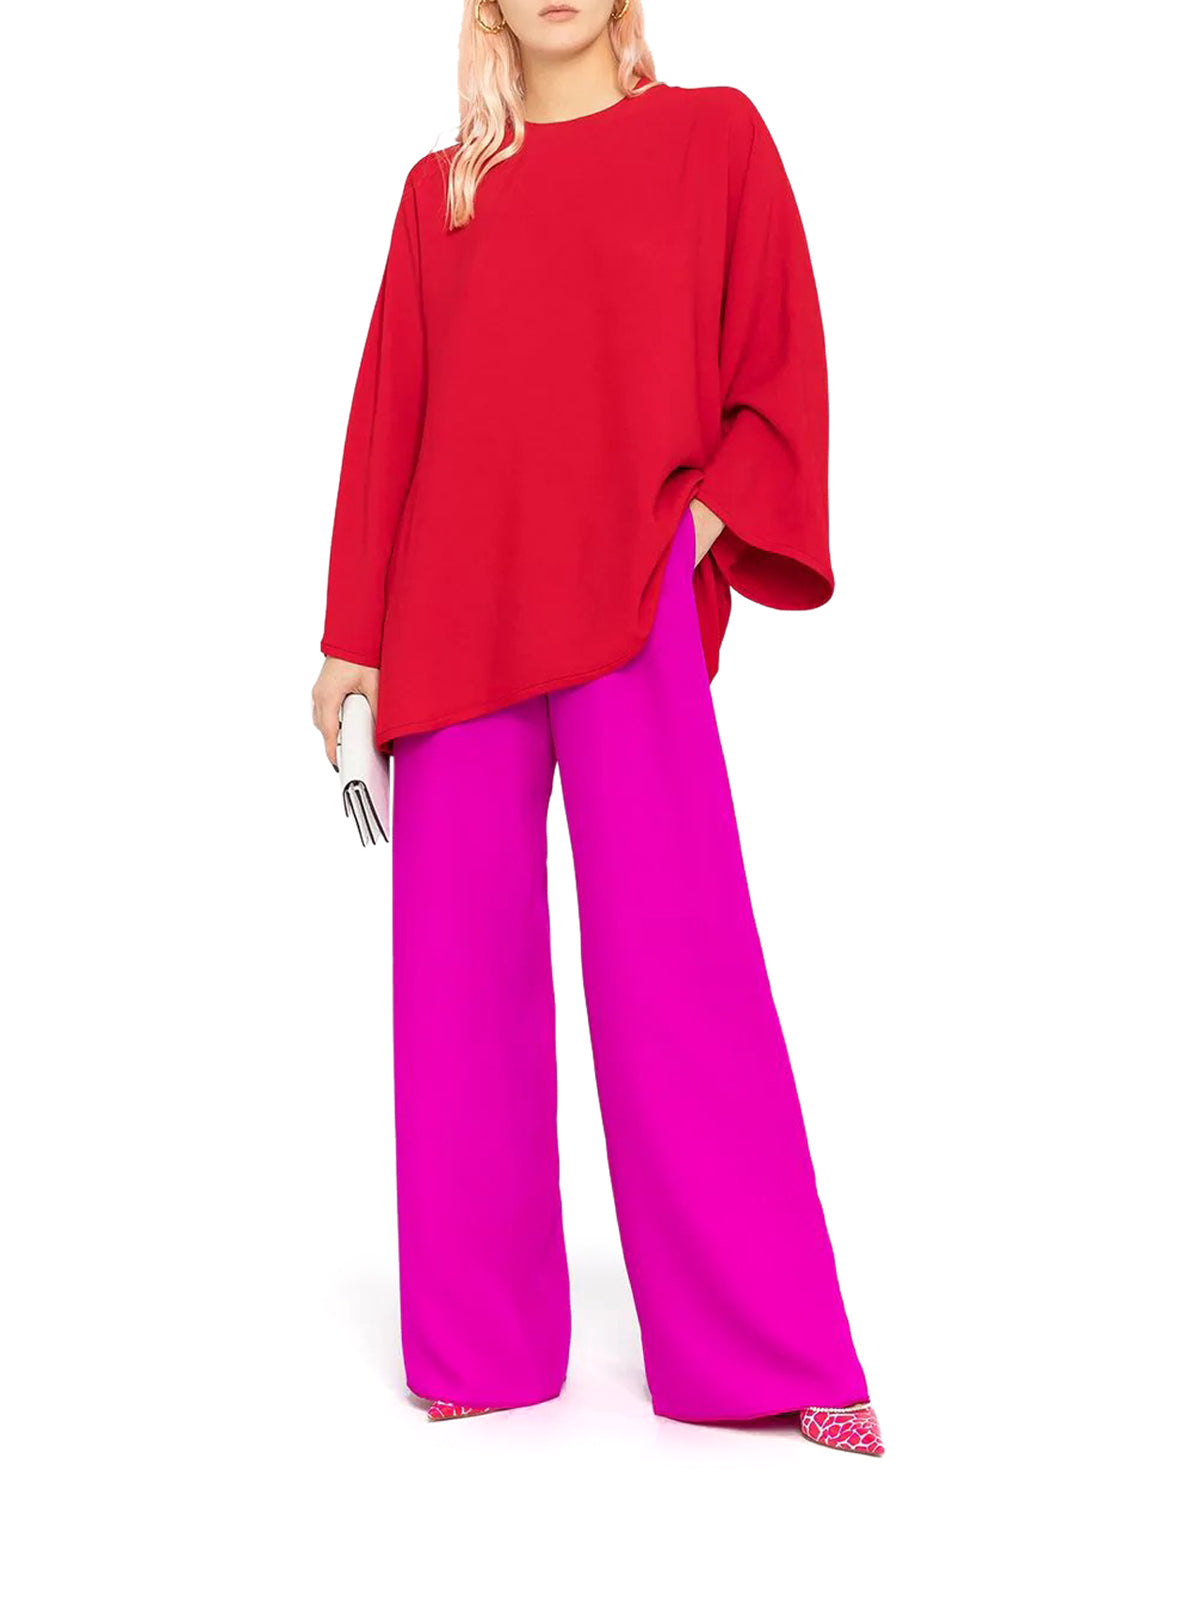 Cady Couture trousers